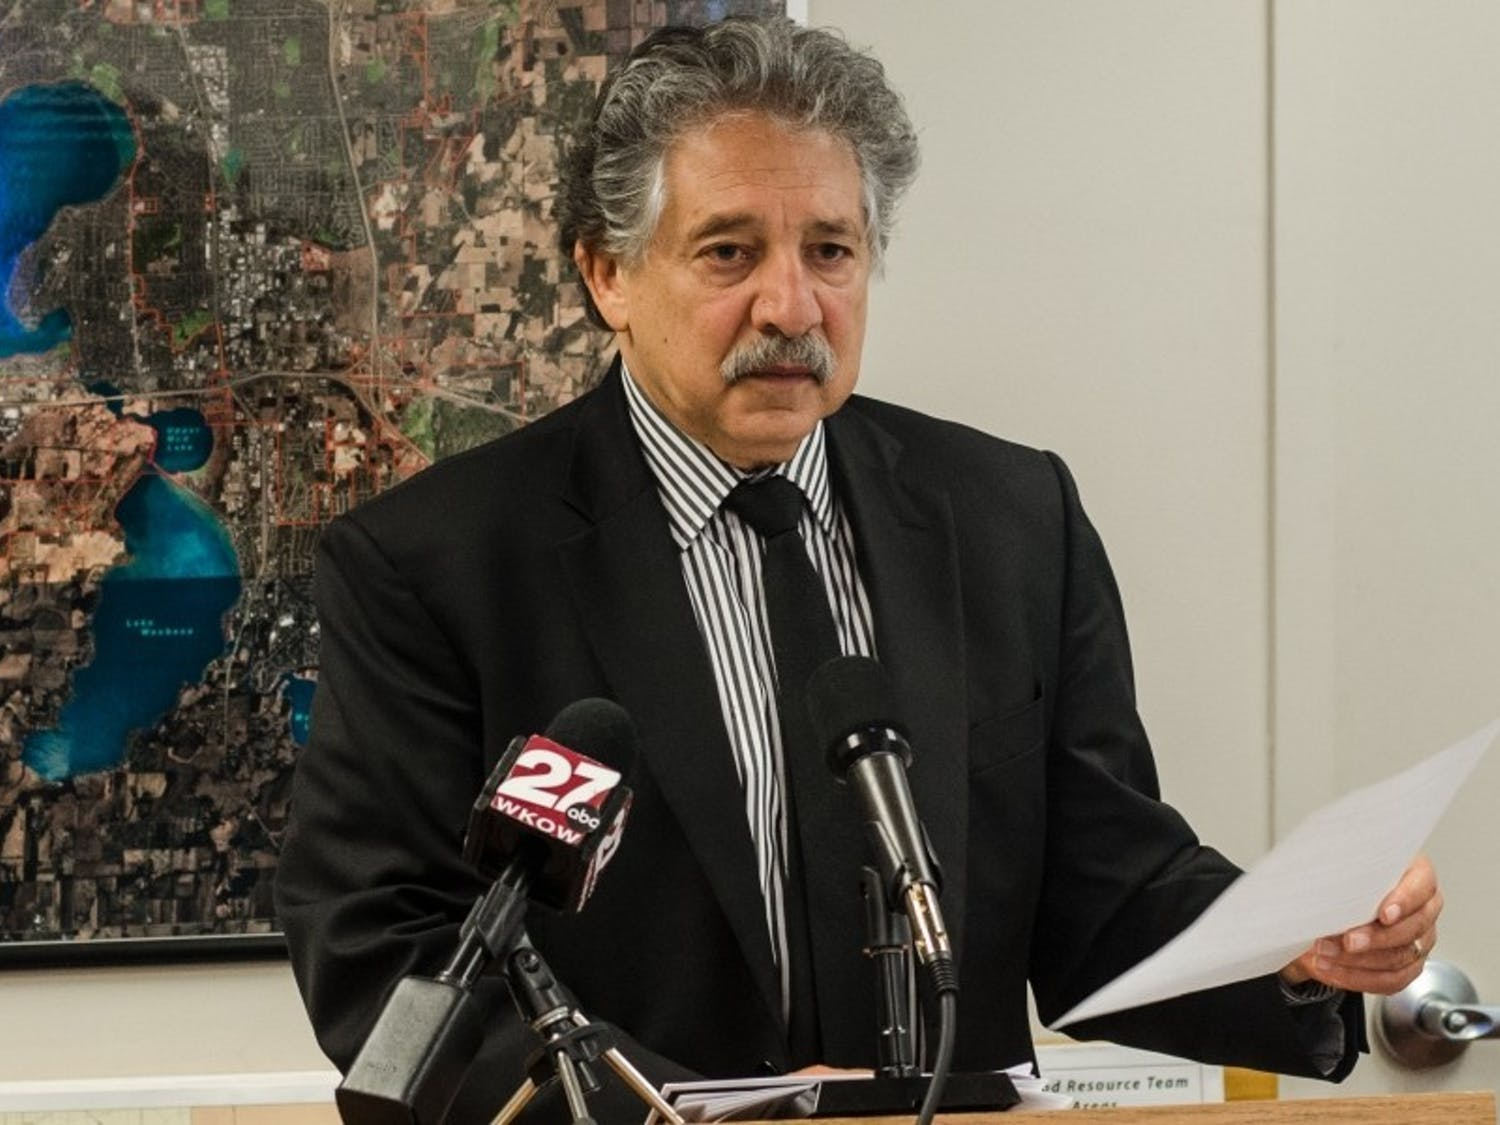 Citing oversight structures, city assessor Michelle Drea said an ethics complaint alleging Mayor Paul Soglin influenced property evaluations did not have any validity.